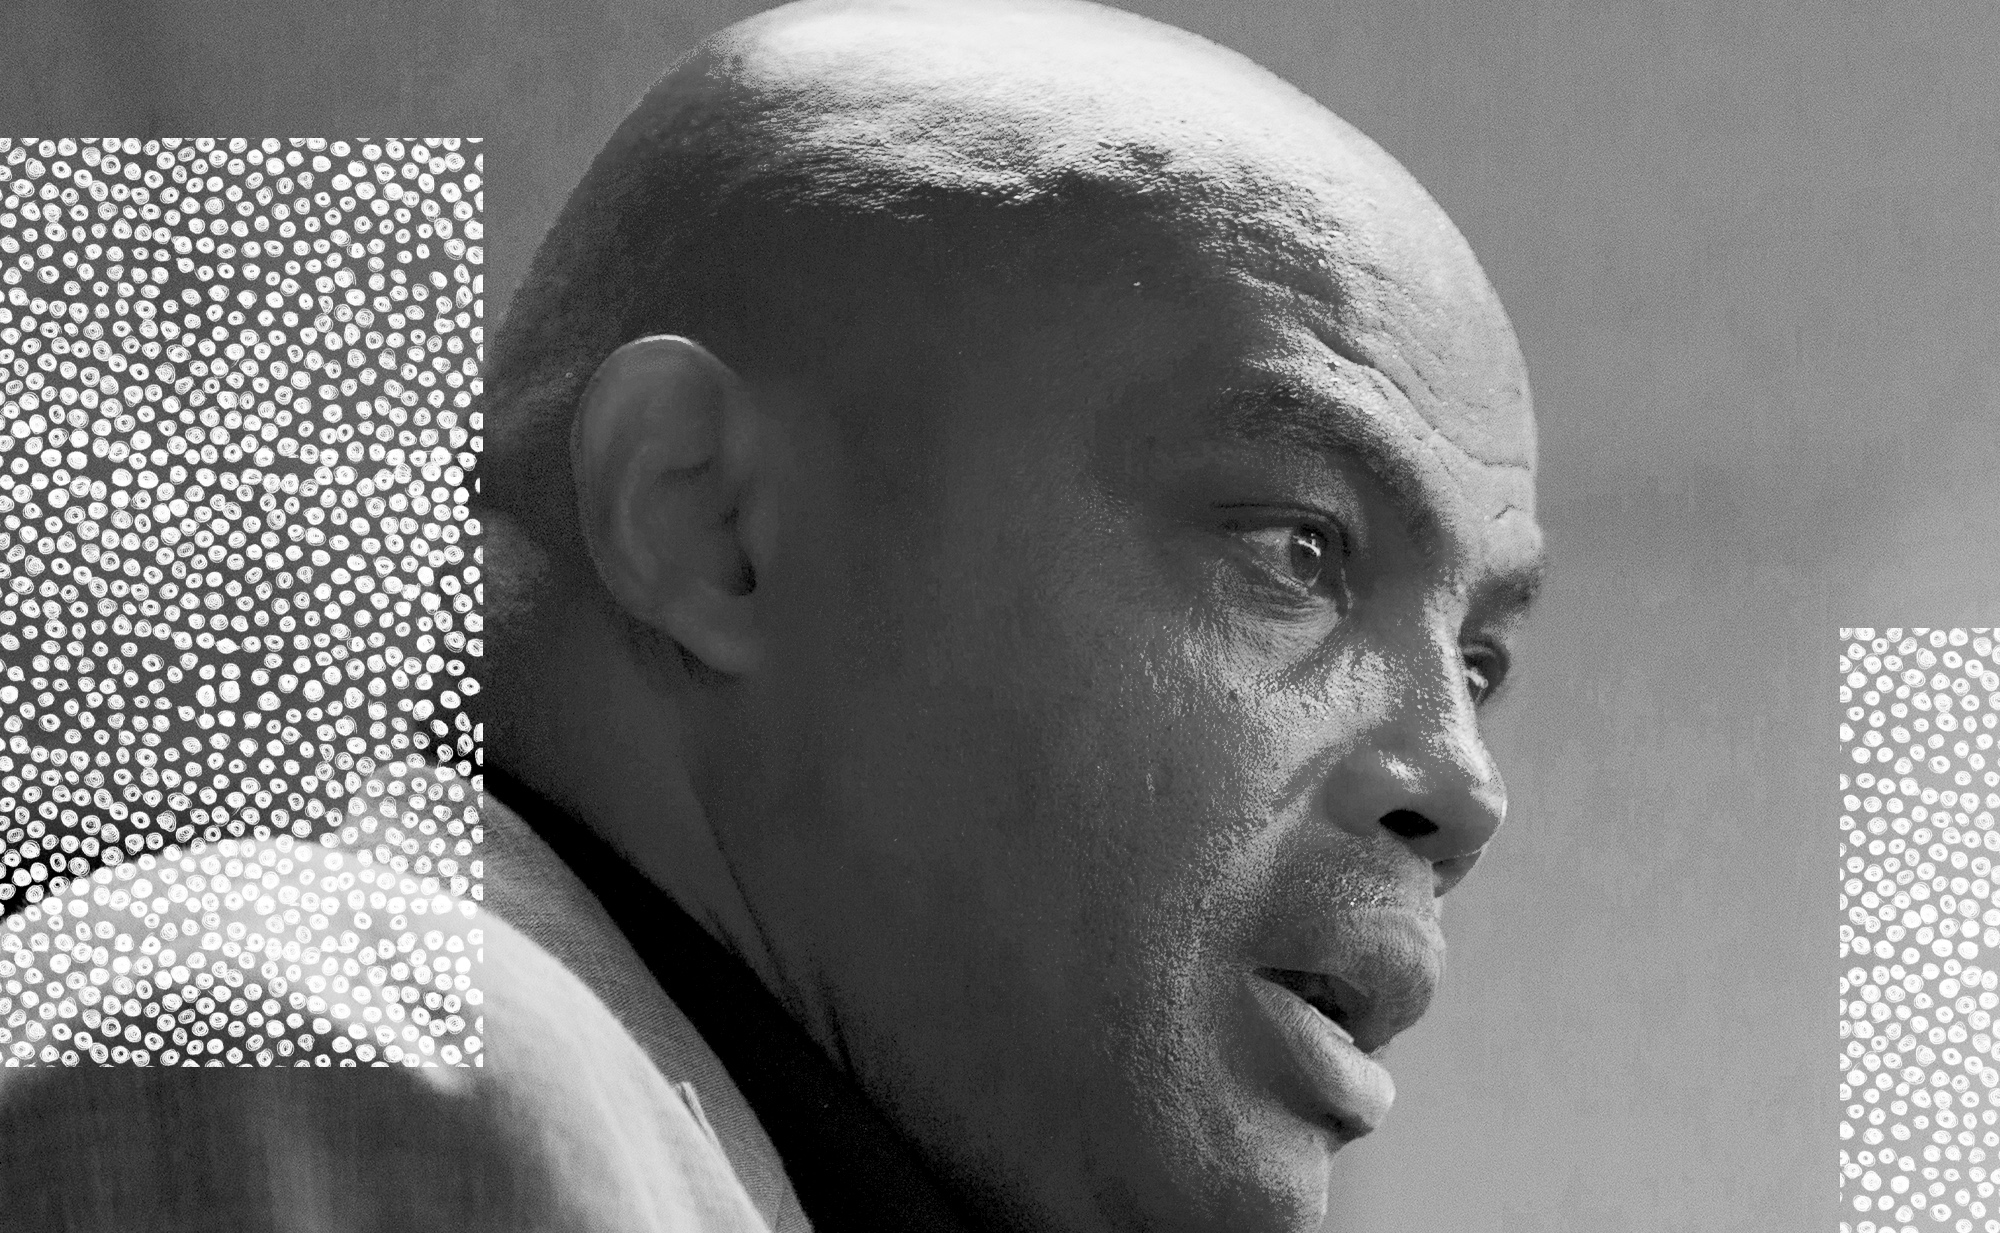 Charles Barkley 'joked' about hitting a woman. She doesn't need to justify speaking up.